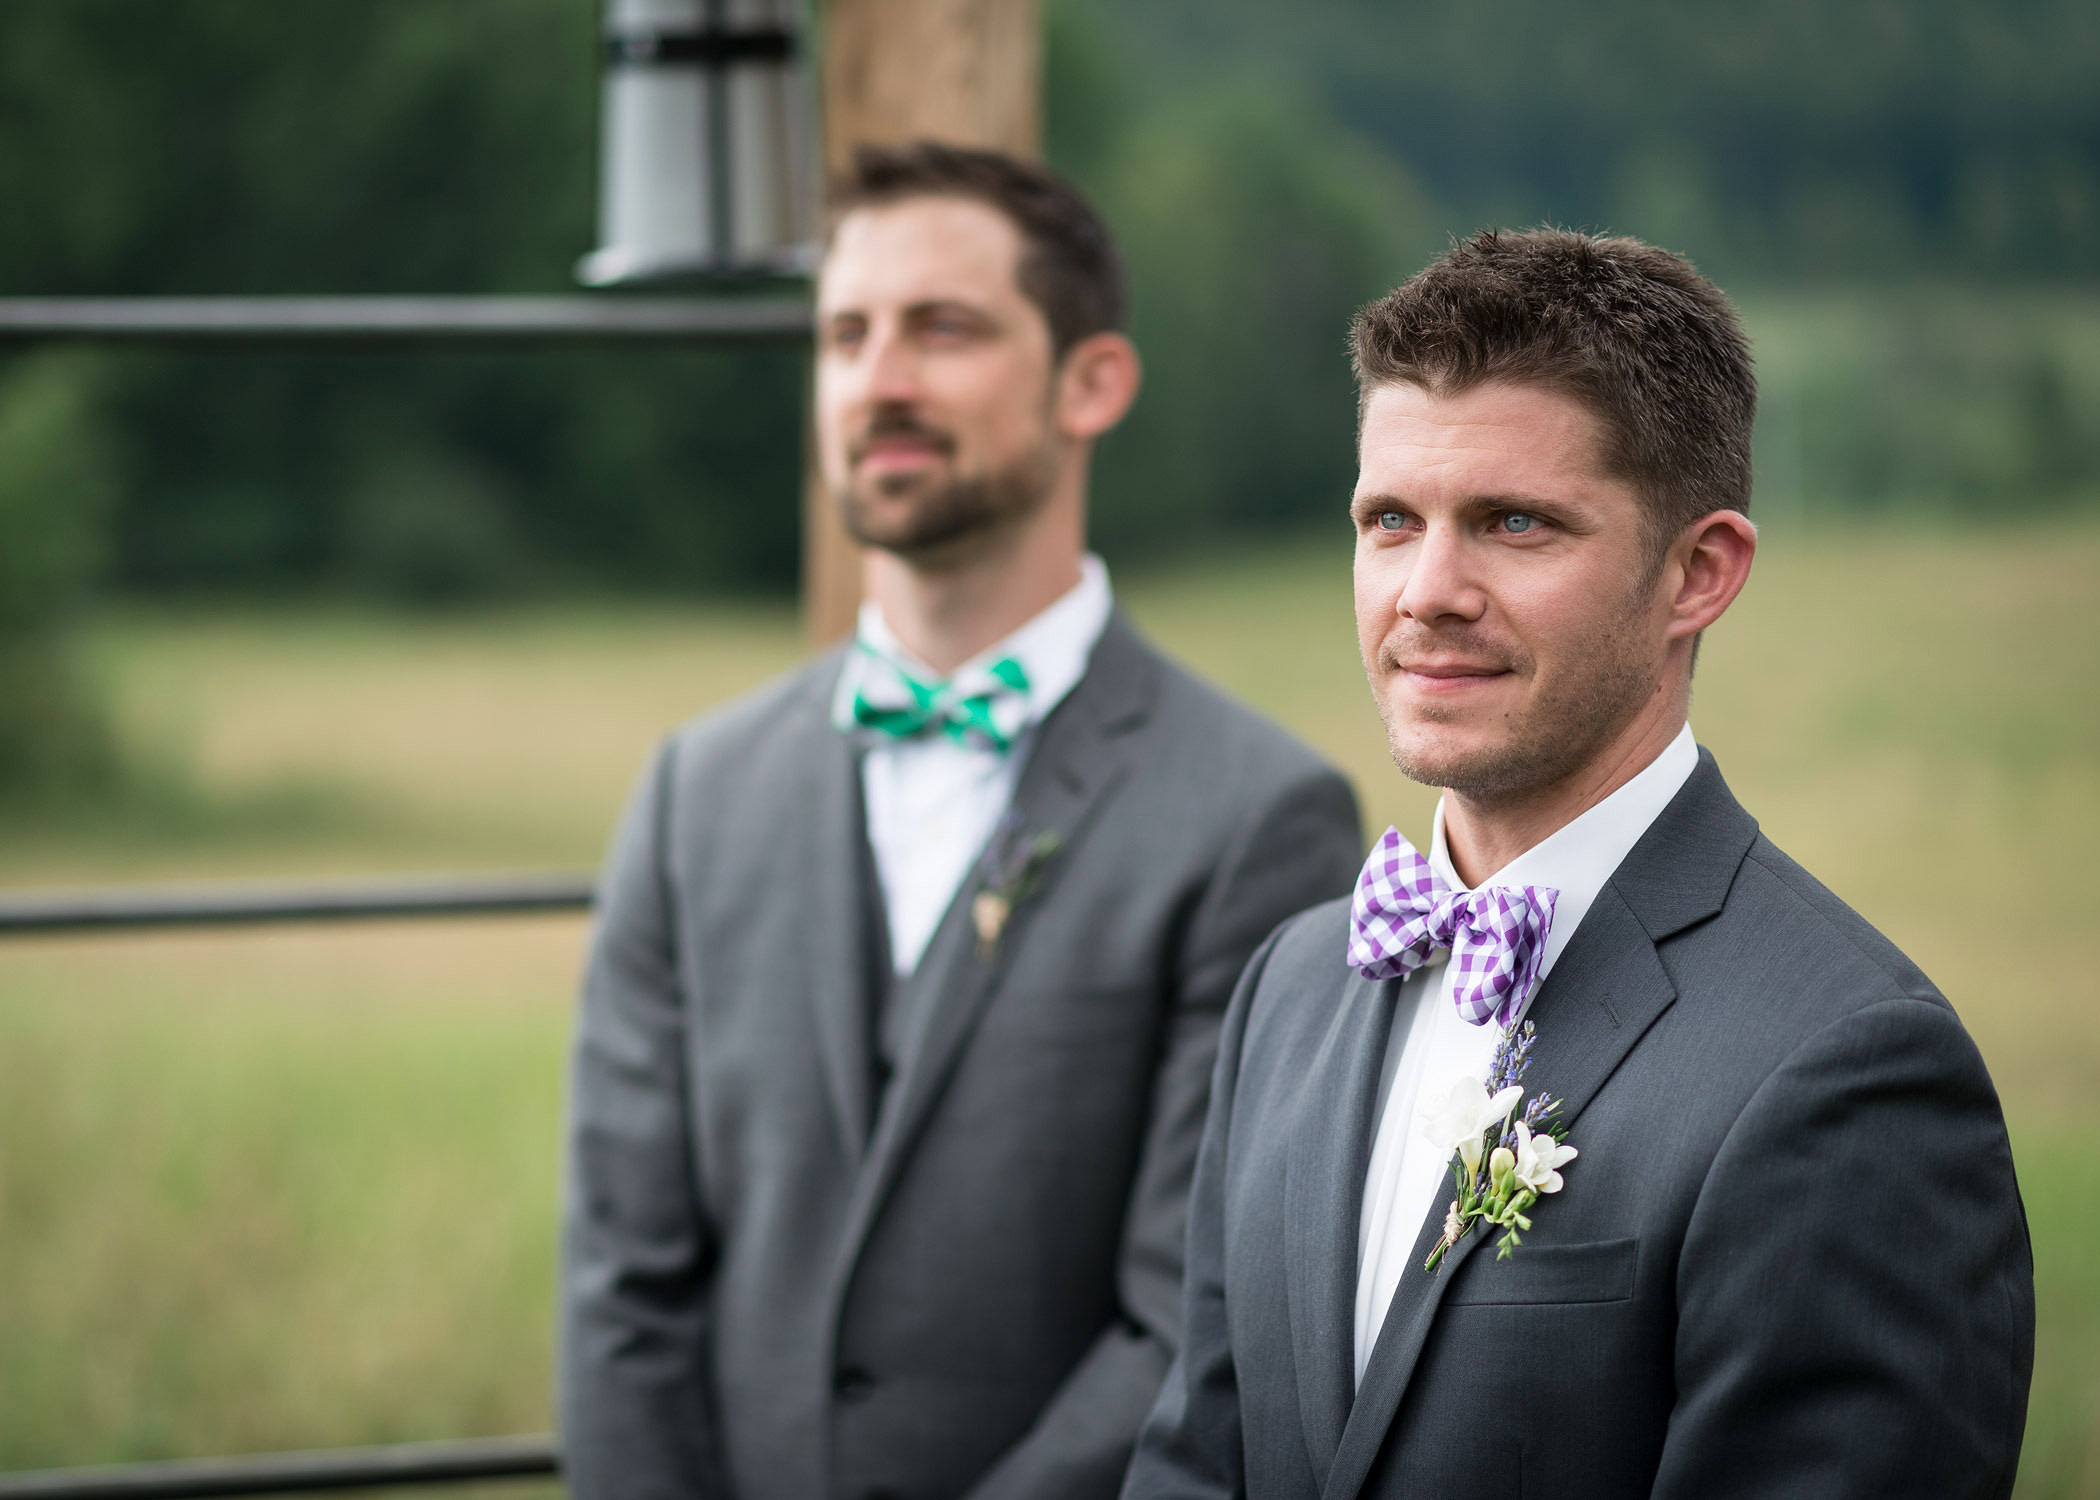 A groom watches his bride walk down the aisle during a wedding at Bliss Ridge taken by Vermont wedding photographer Stina Booth